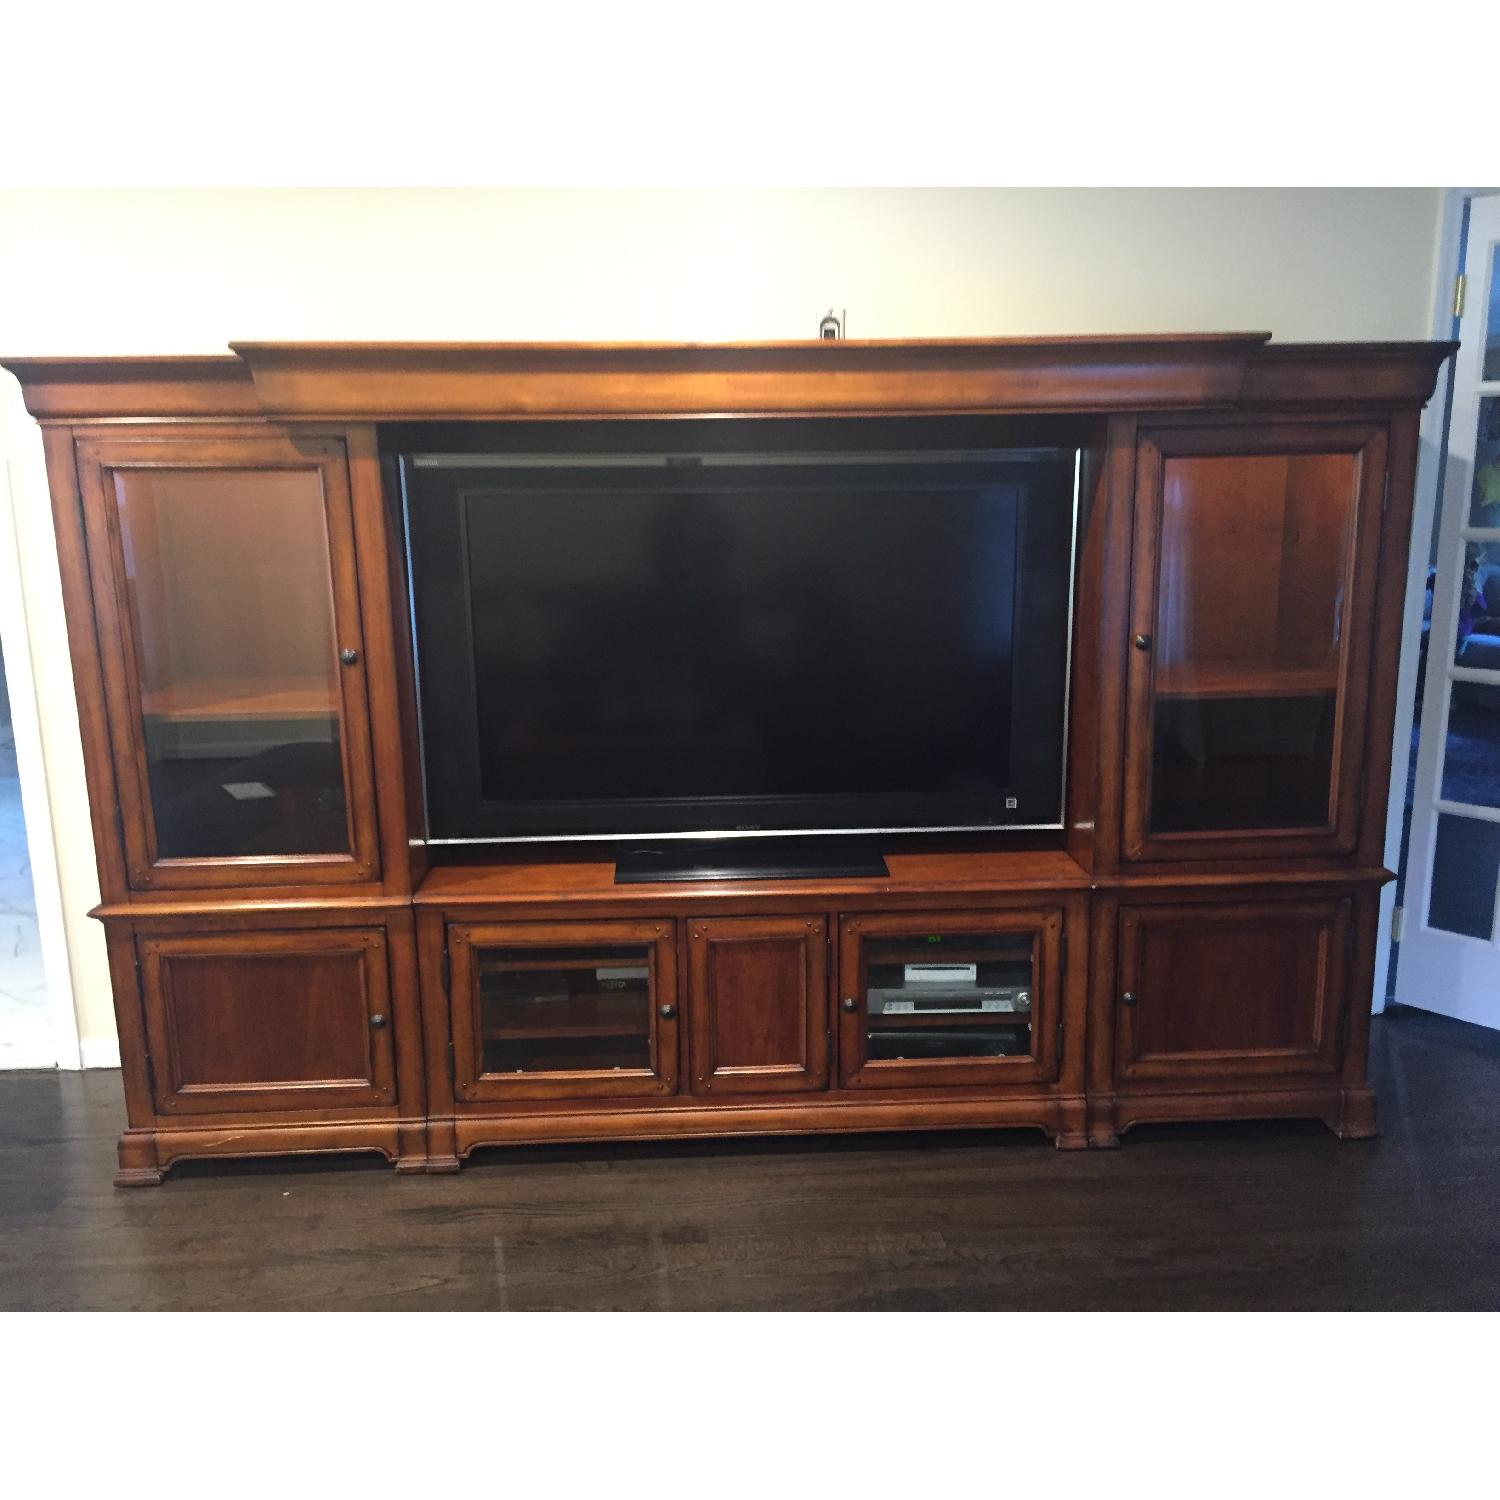 Hooker Furniture Home Entertainment Wall Unit - image-1